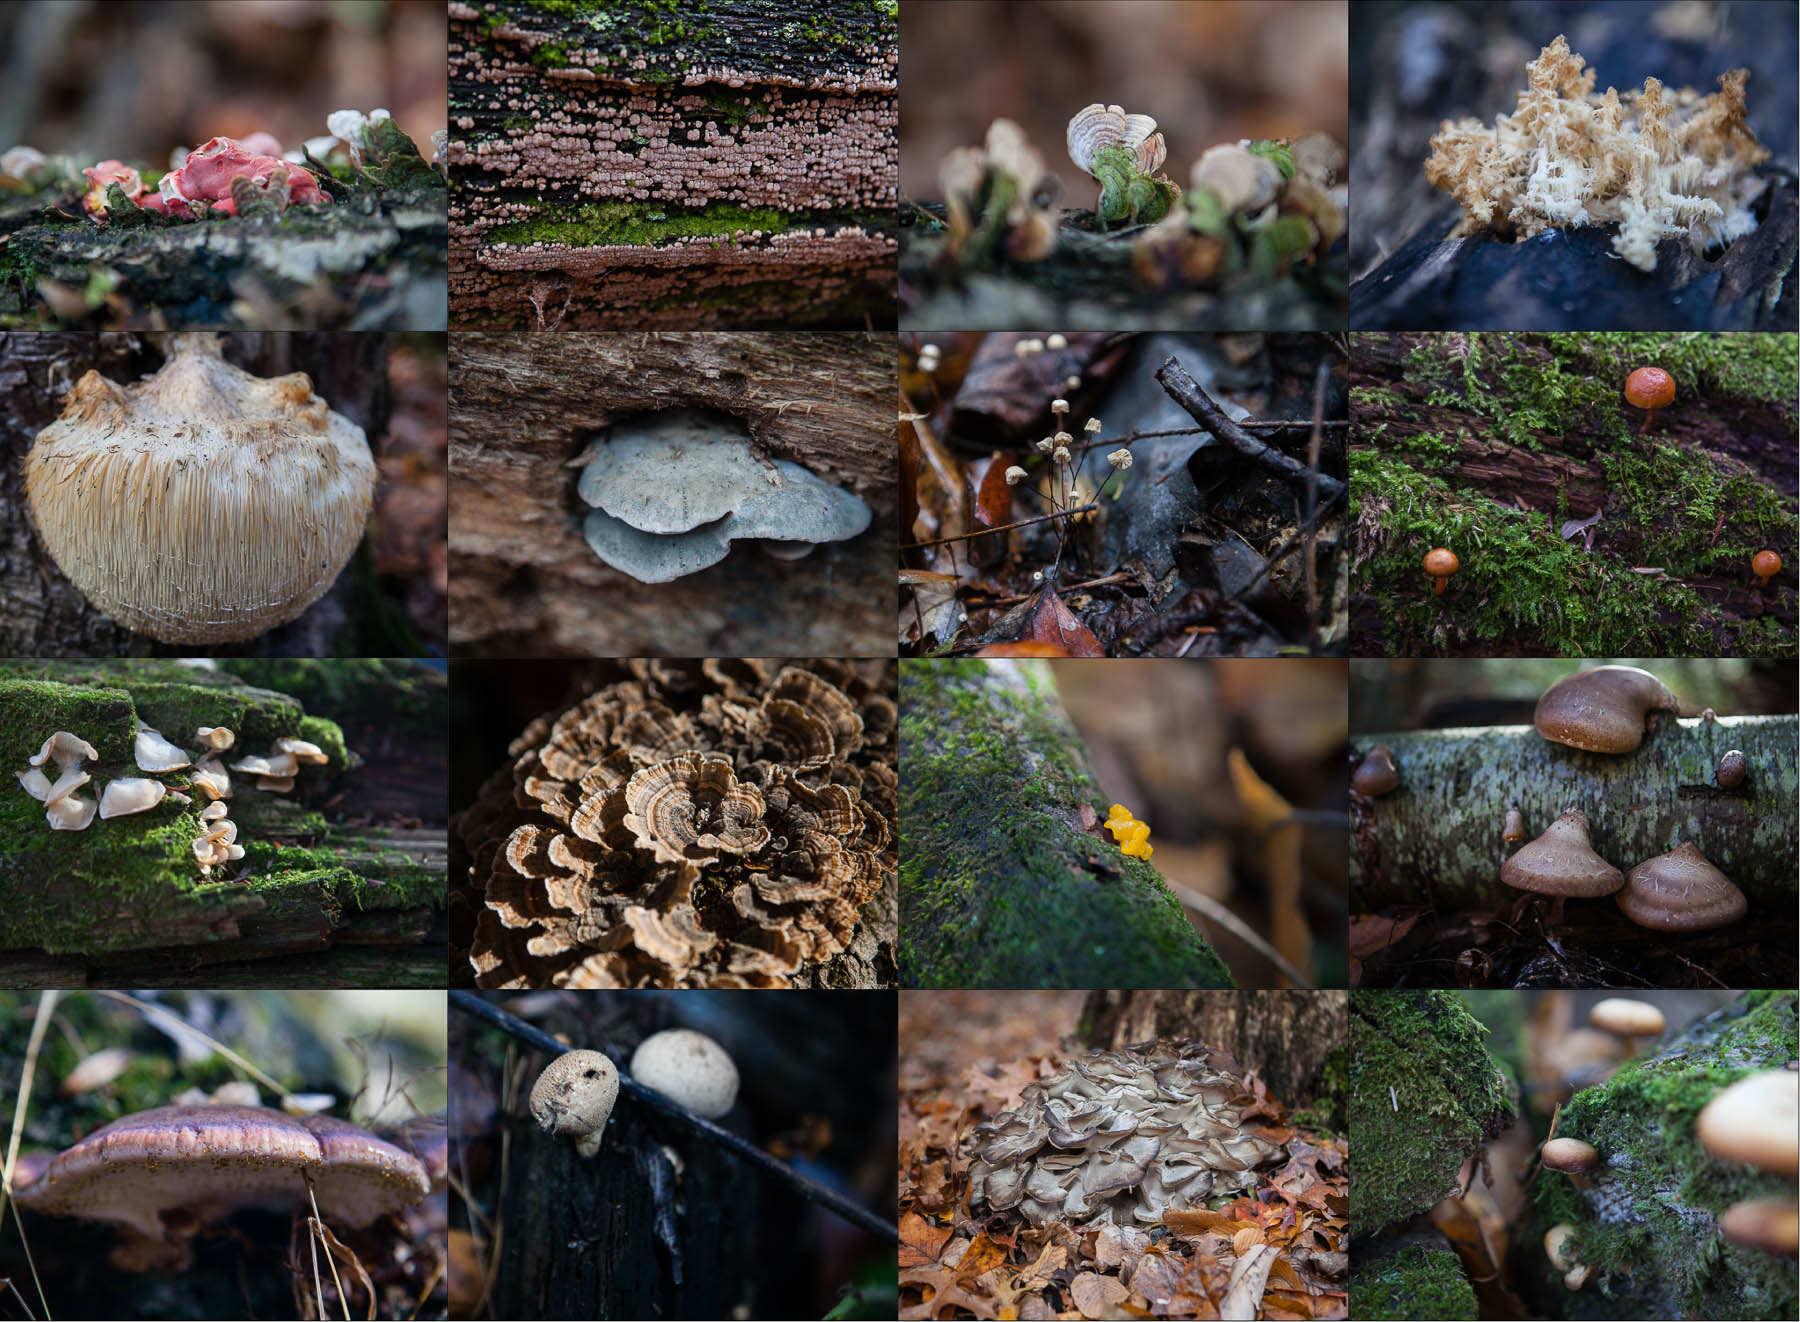 What role does the fungi play in the ecosystem The importance of fungi in nature